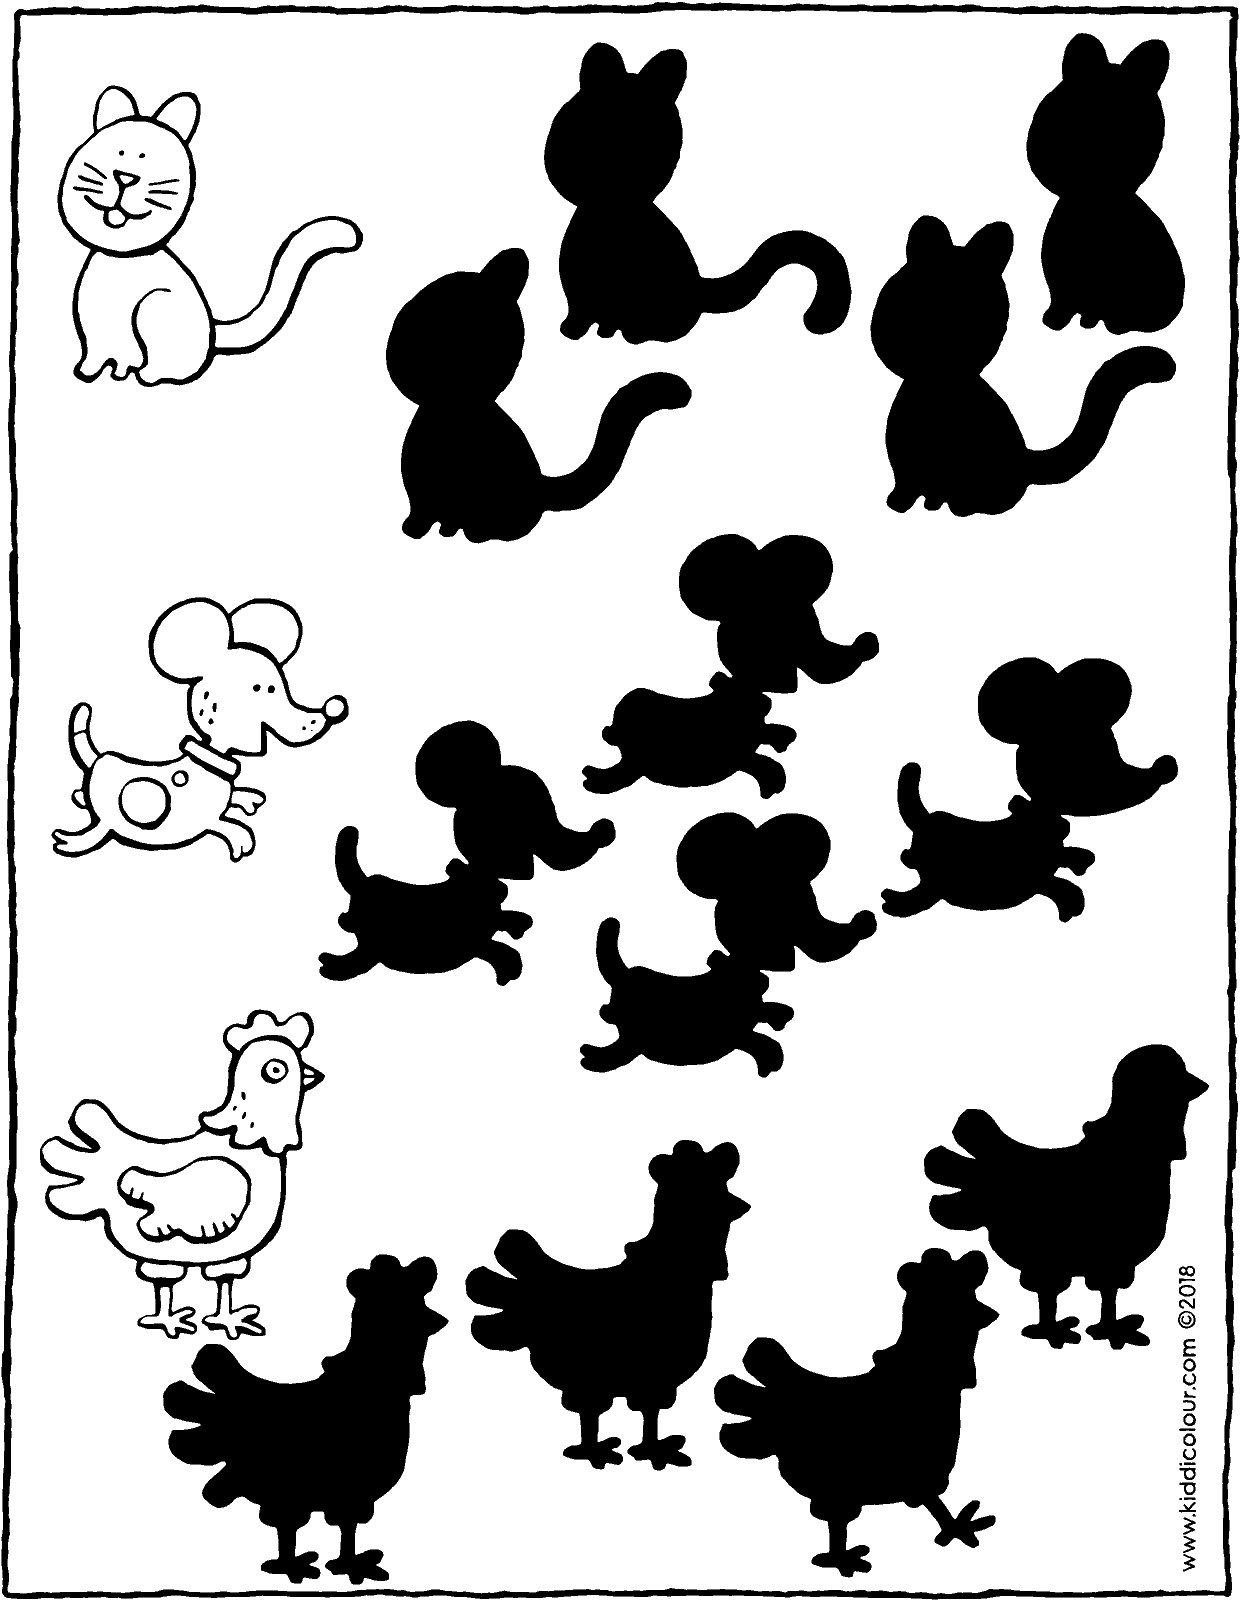 spot the correct animal shadow colouring page drawing picture 01V